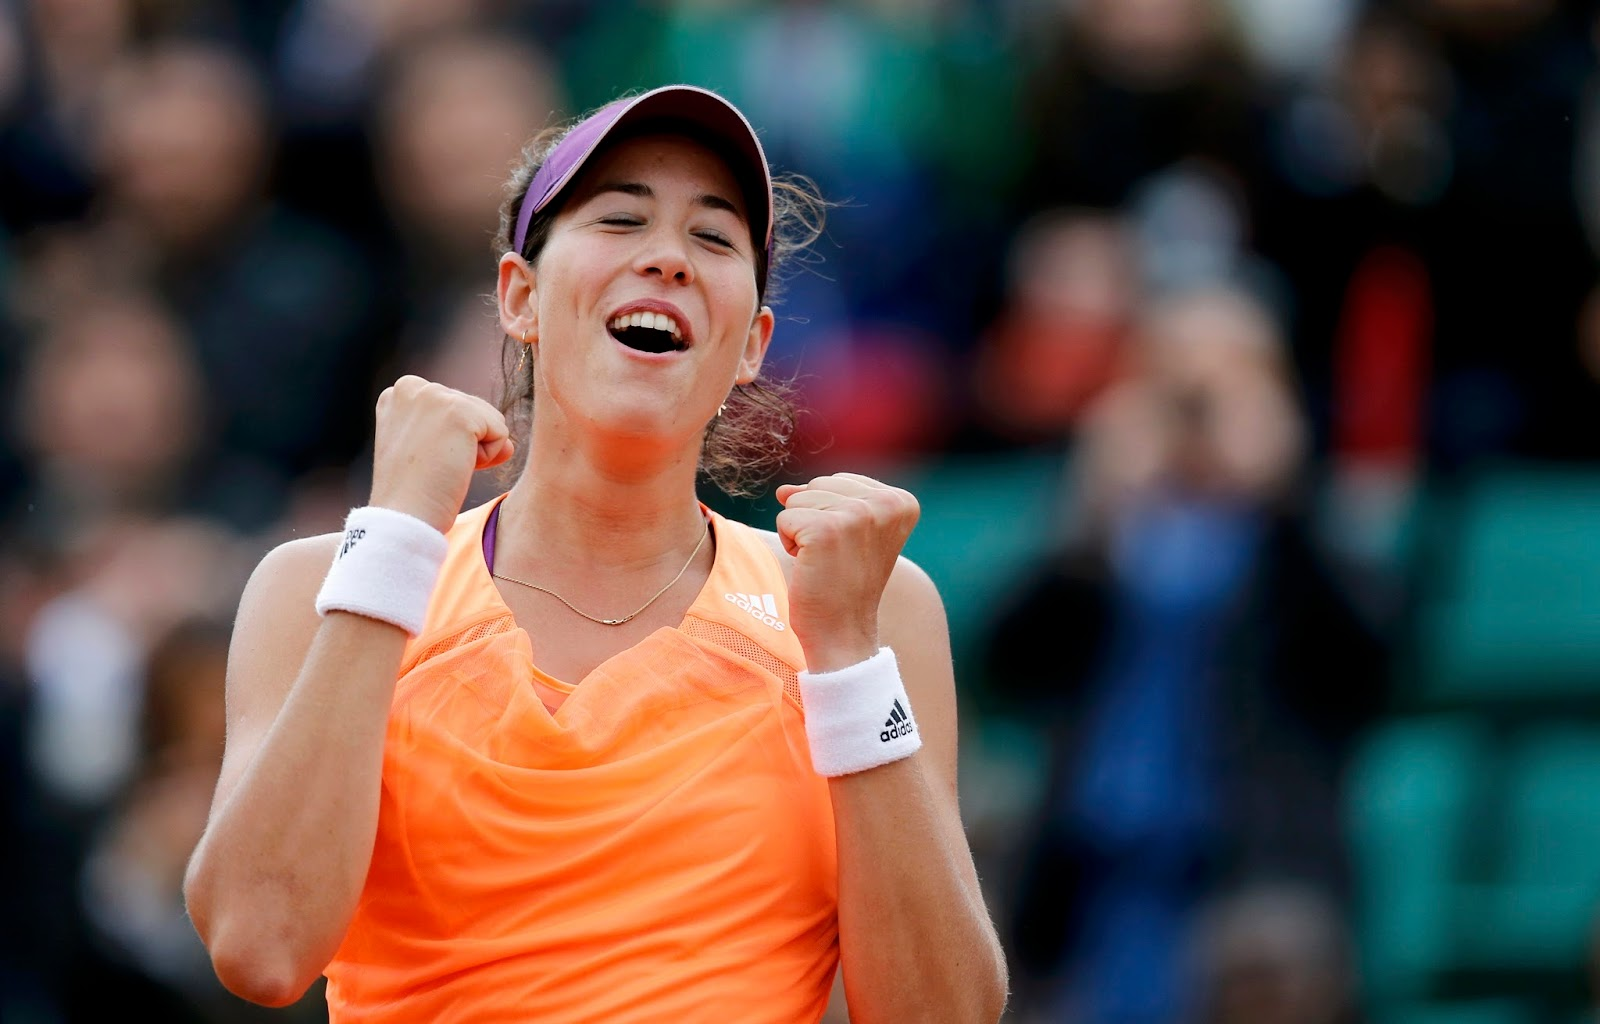 amazing garbine muguruza smiling face hd mobile desktop background free photos